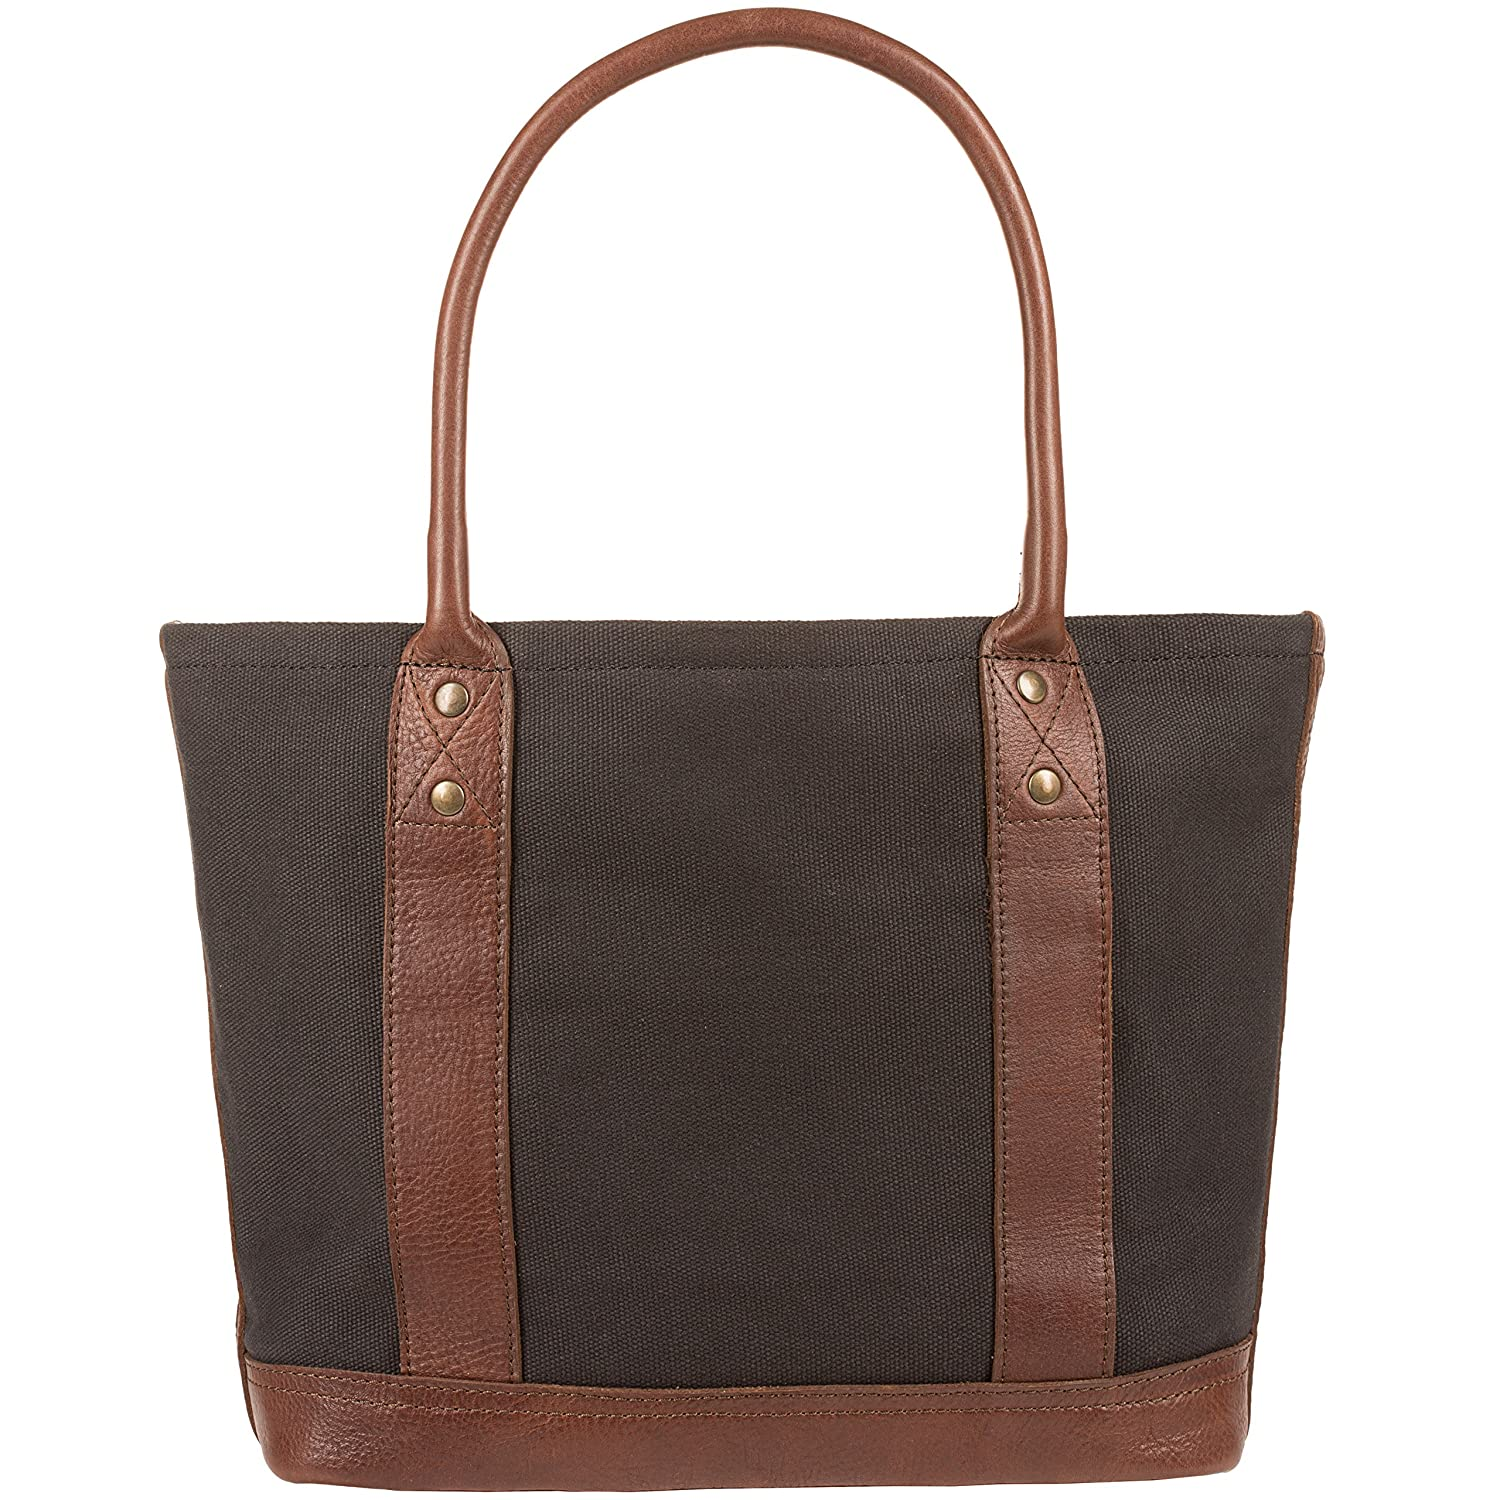 Will Leather Goods Medium Womens Canvas Leather Getaway Tote